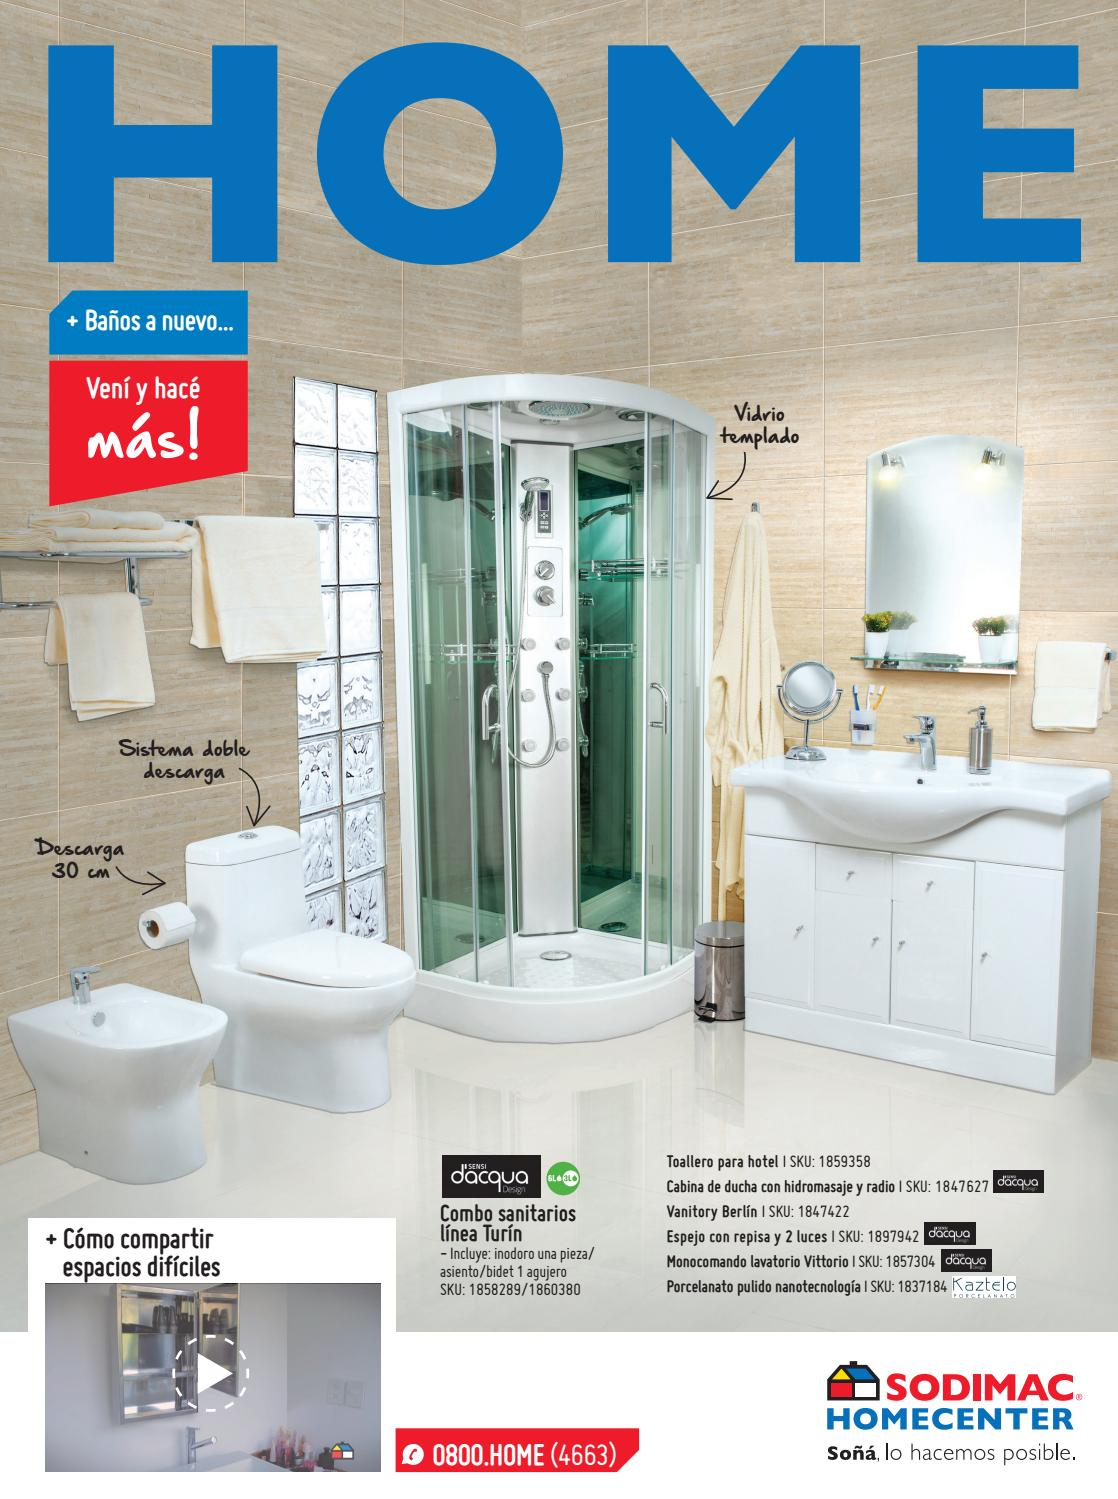 Sodimac Homecenter - Catálogo Junio 2016 UY by Sodimac - issuu